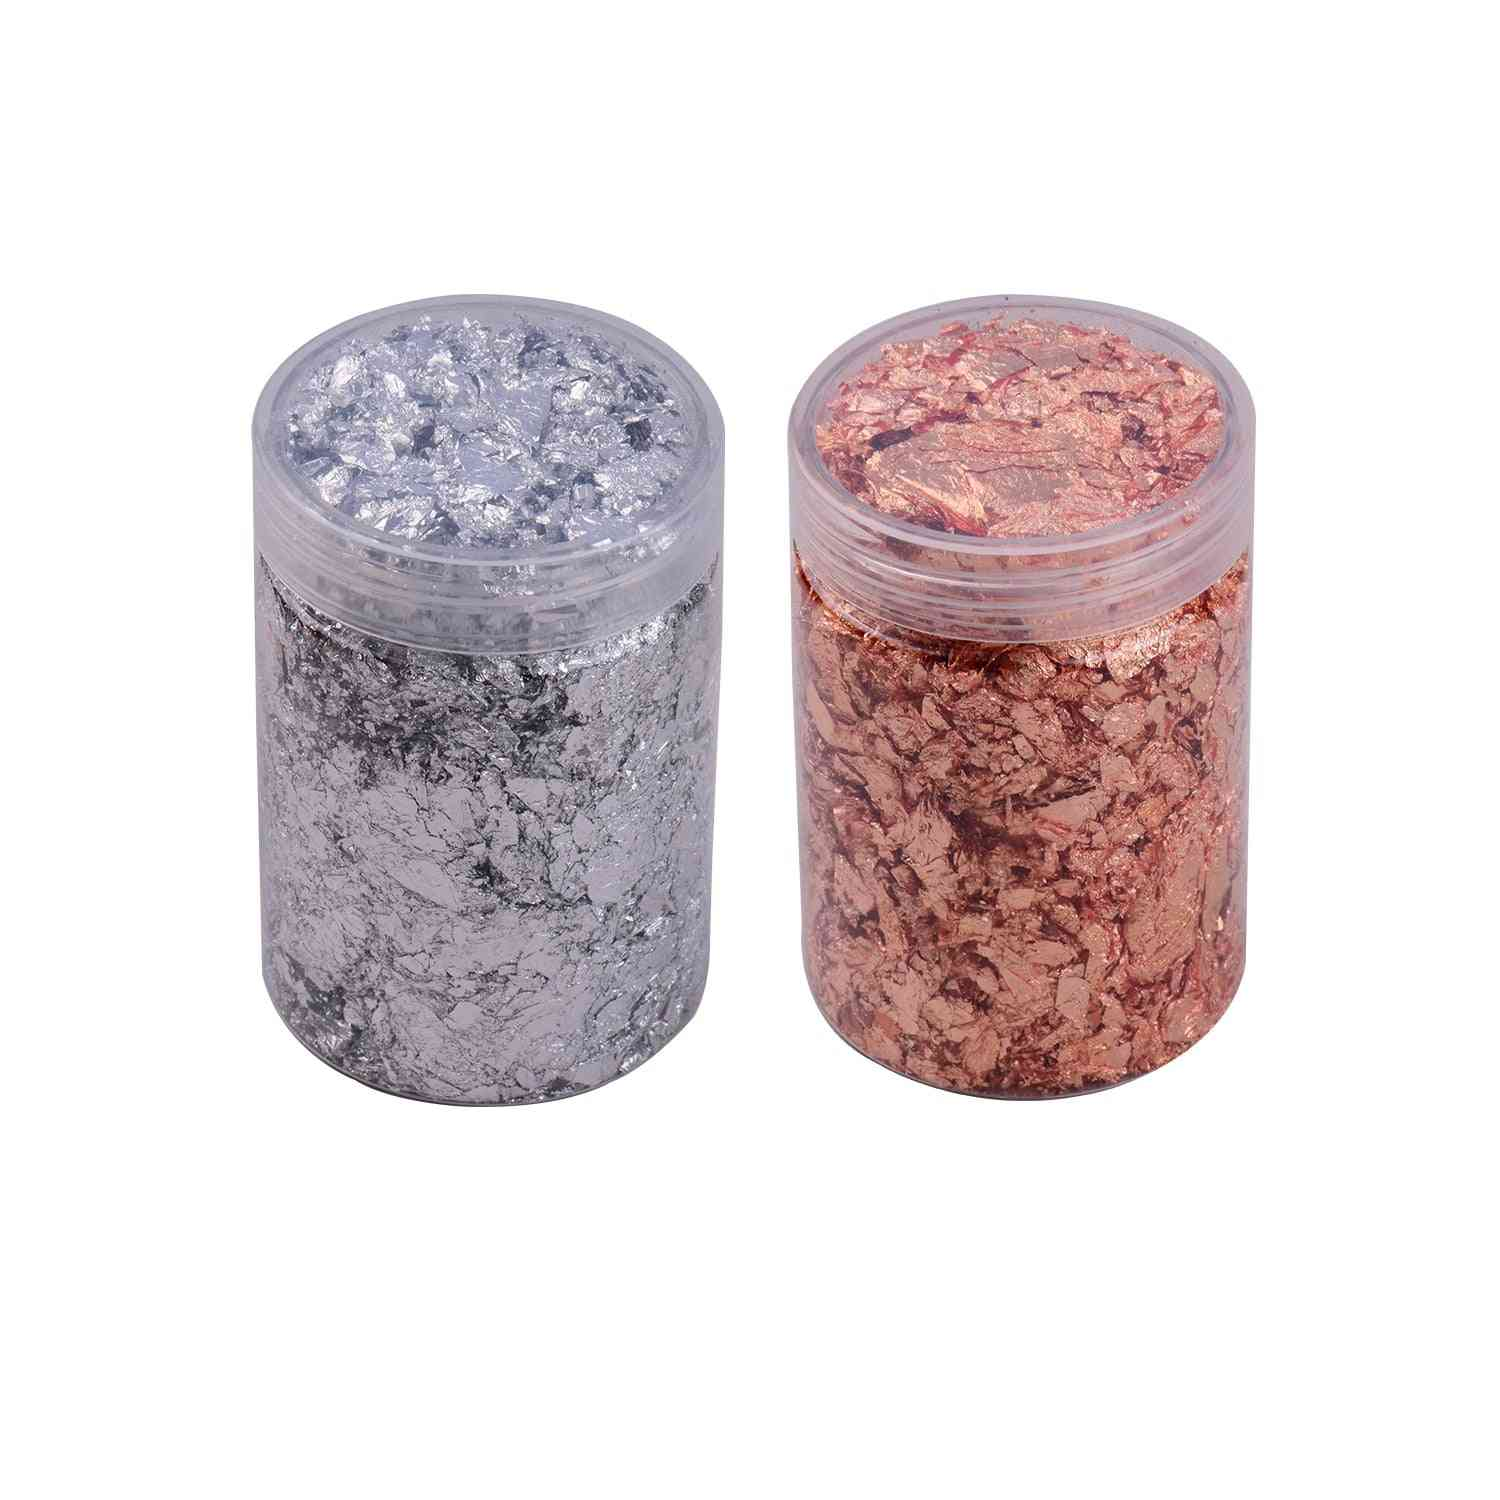 Imitation Gold Foil Flakes, Metallic For Resin Jewelry, Making Nails Art Painting, Diy Crafts Home Decoration